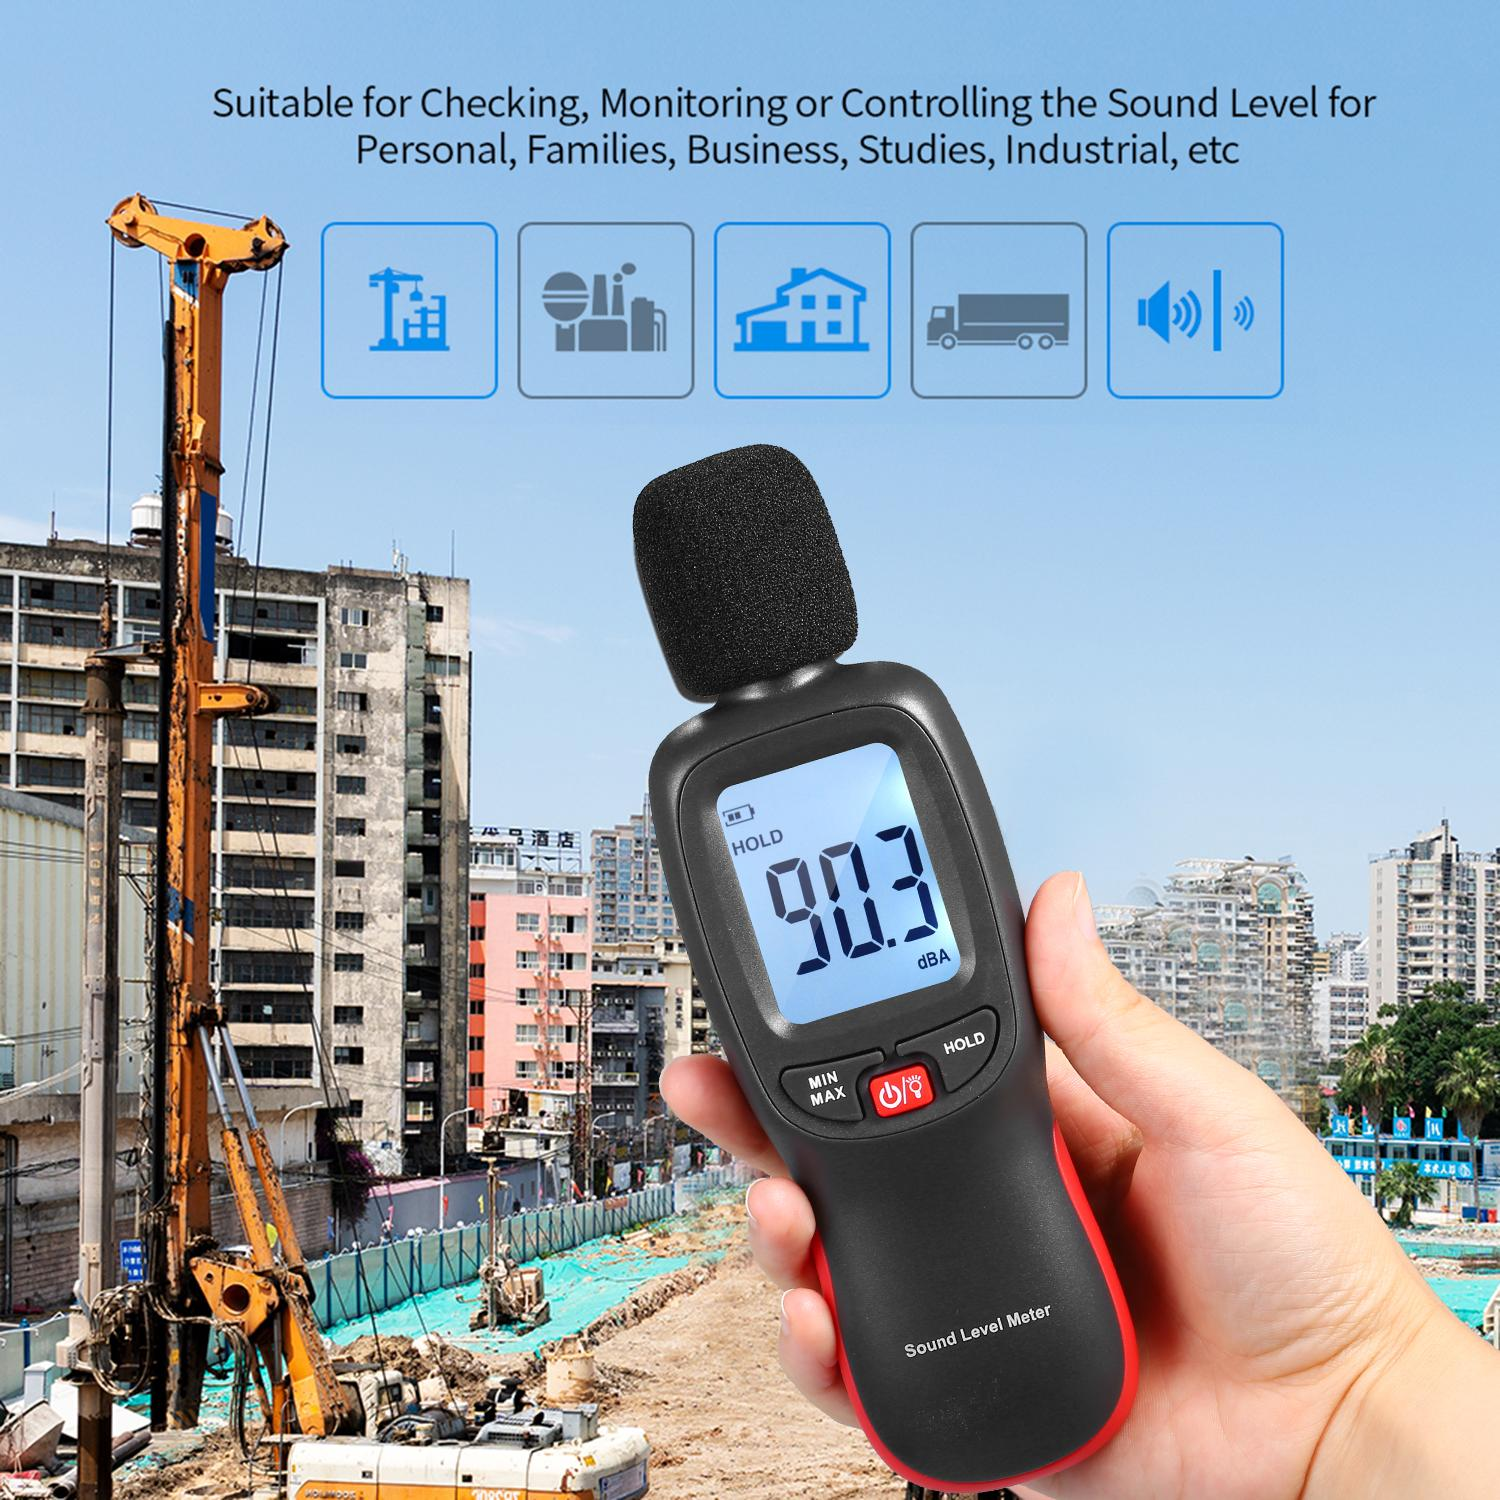 Mini LCD Digital Noisemeter Sound Level Meter 30-130dB Noise Volume Measuring Instrument Decibel Monitoring Tester with Max/Min/Data Hold Mode